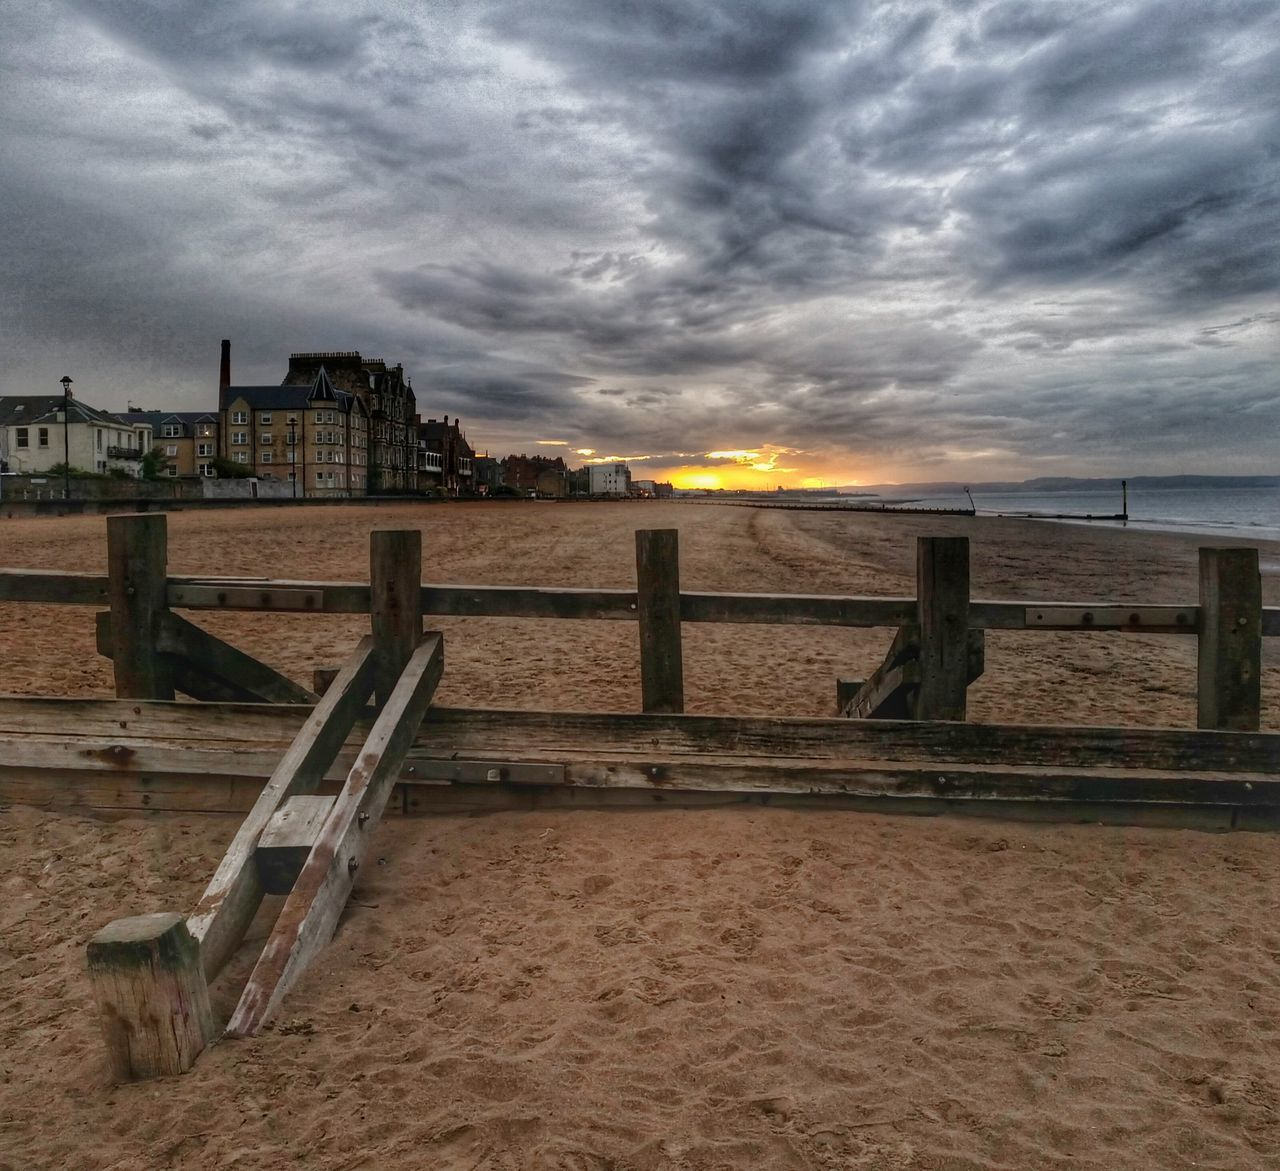 Portobello Beach, Edinburgh Portobello Scotland Sunset_collection Beachphotography Beauty In Nature Exceptional Photographs Striving For Excellence Enjoying Life Hdr_Collection Tadaa Community 43 Golden Moments My Cloud Obsession☁️ Eye Em Scotland Sundown Malephotographerofthemonth